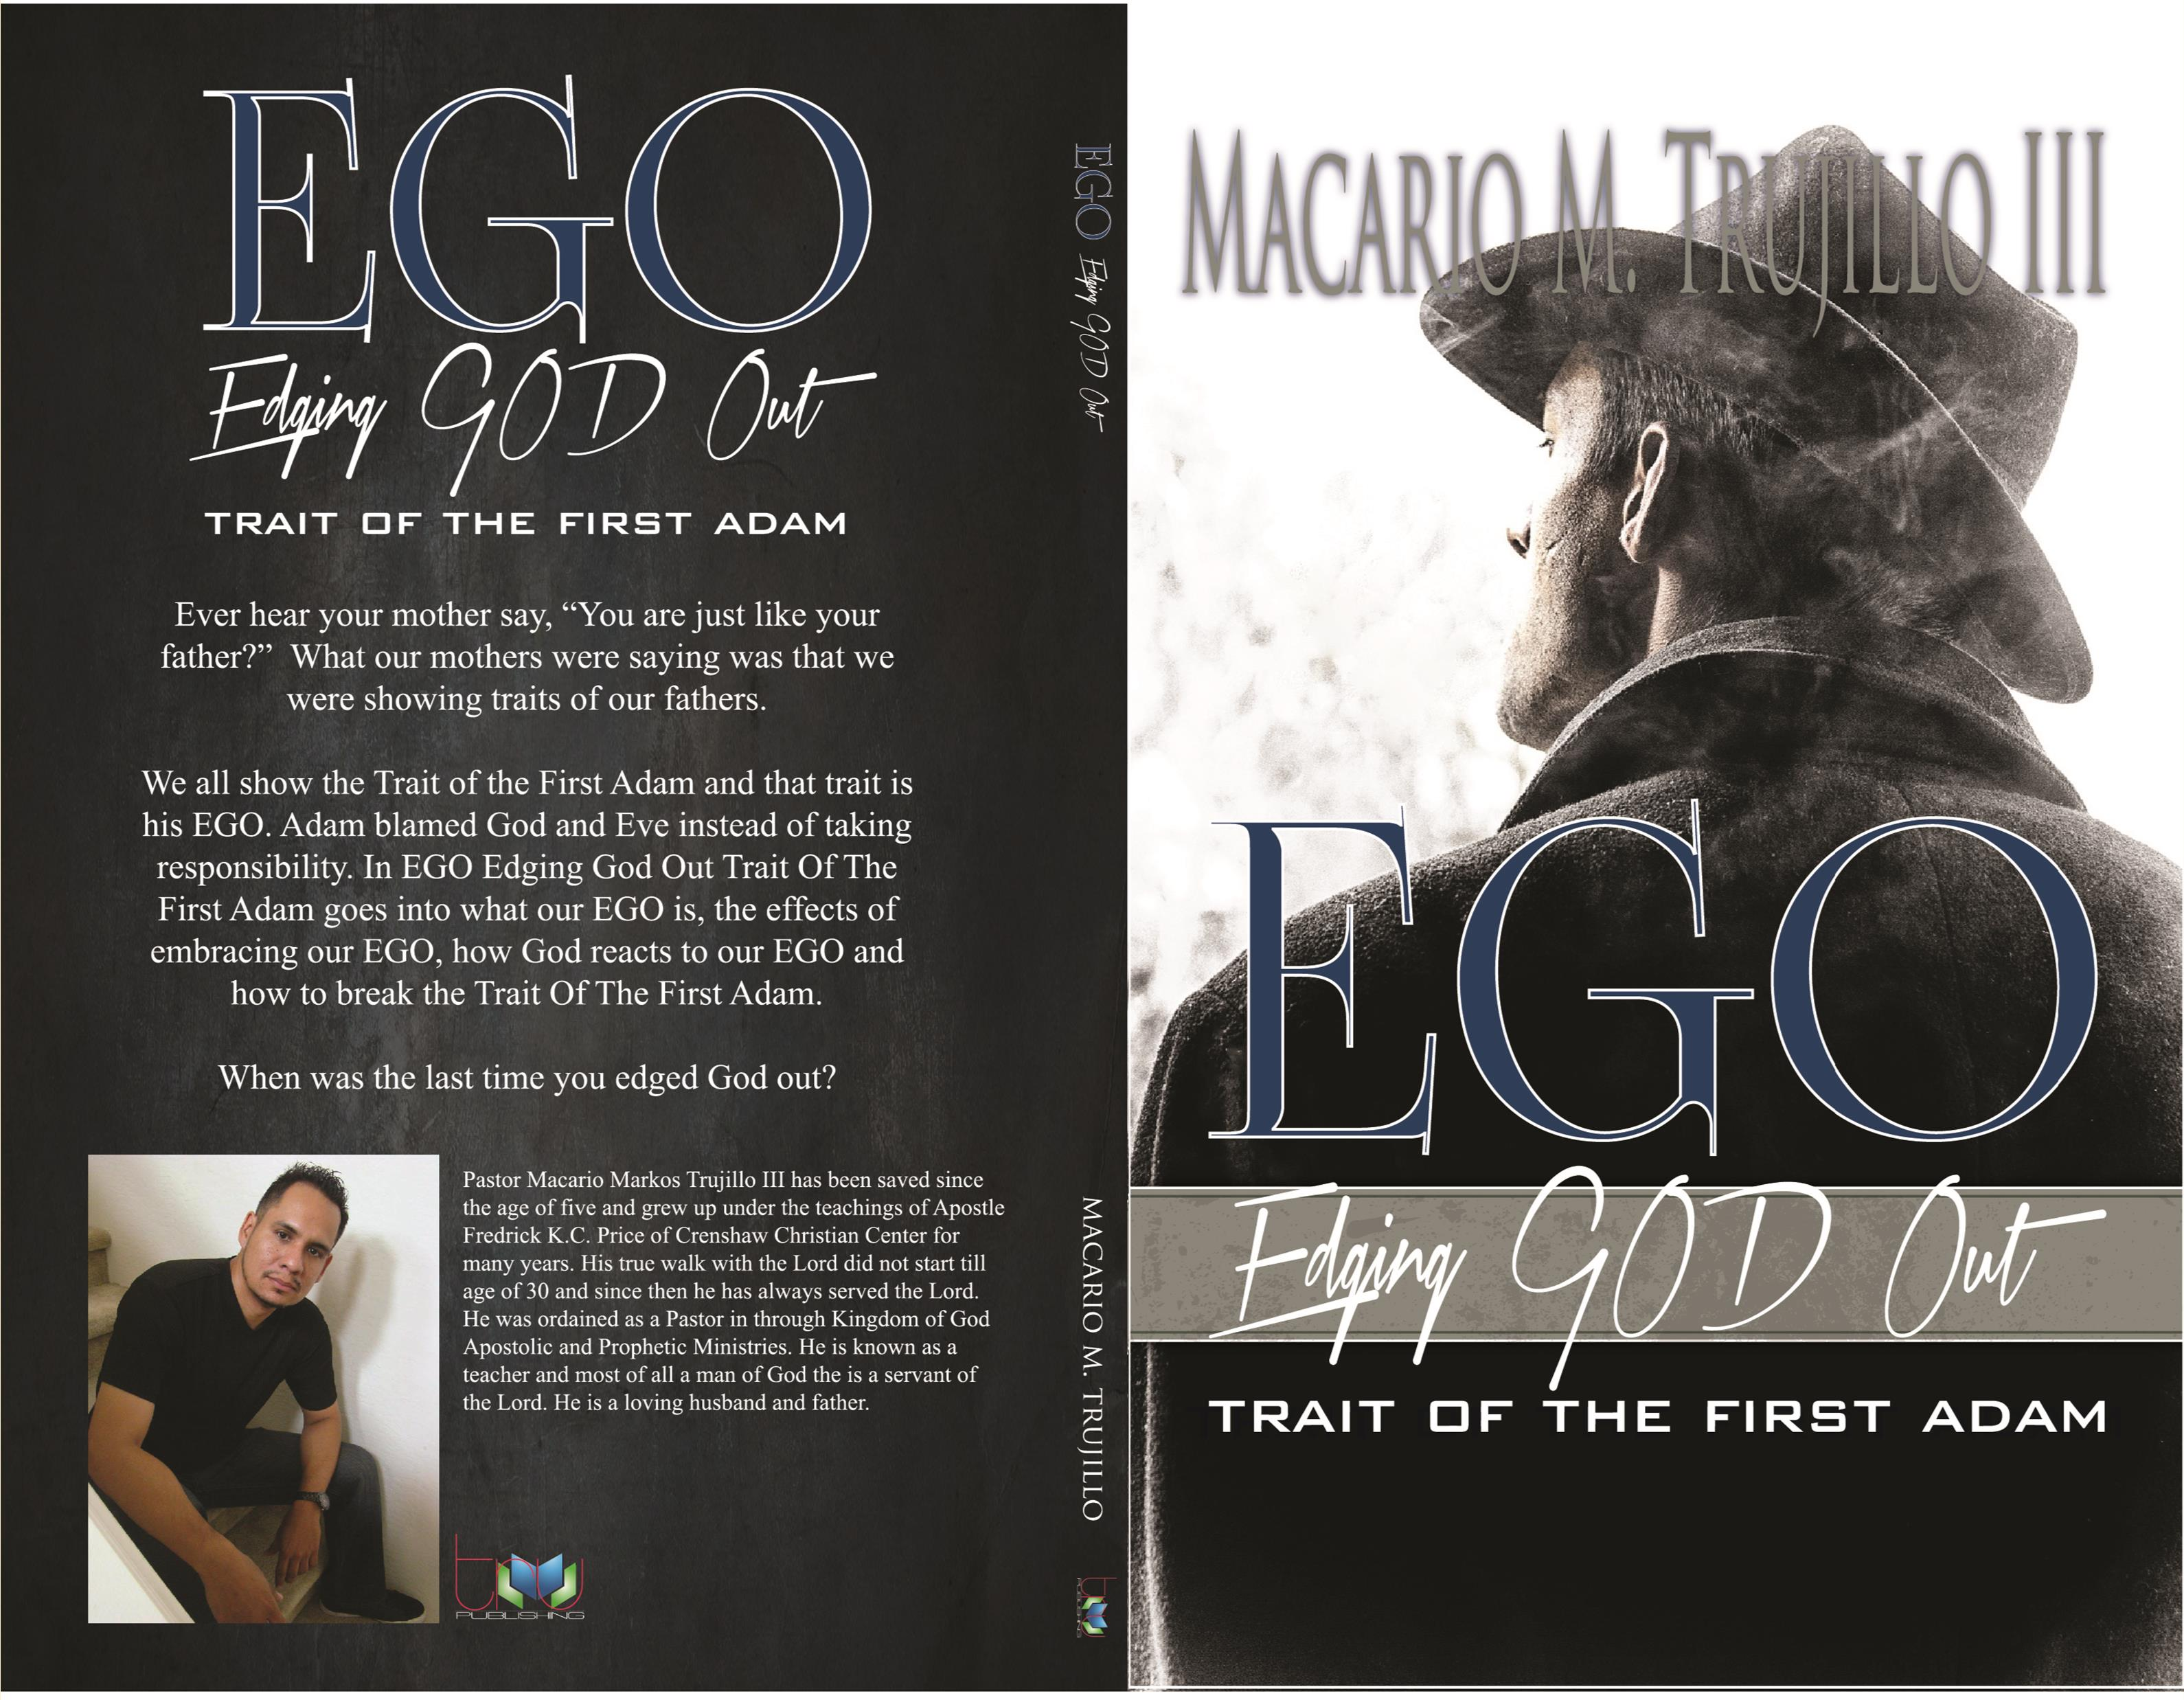 EGO Edging God Out The Trait Of The First Adam cover image